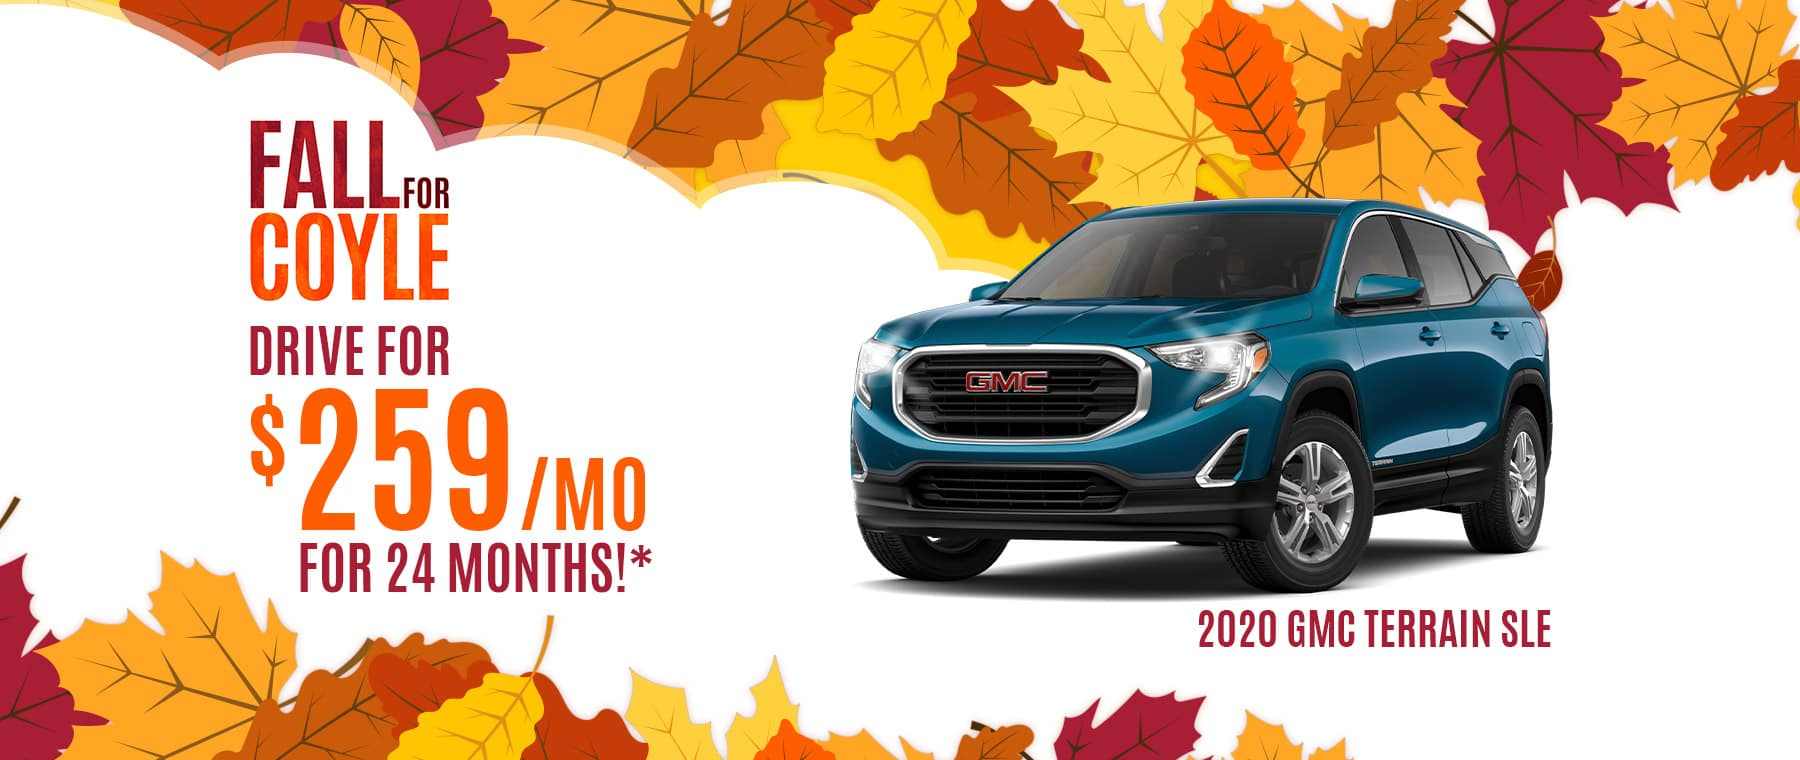 Lease Special on a new GMC Terrain near New Albany, Indiana